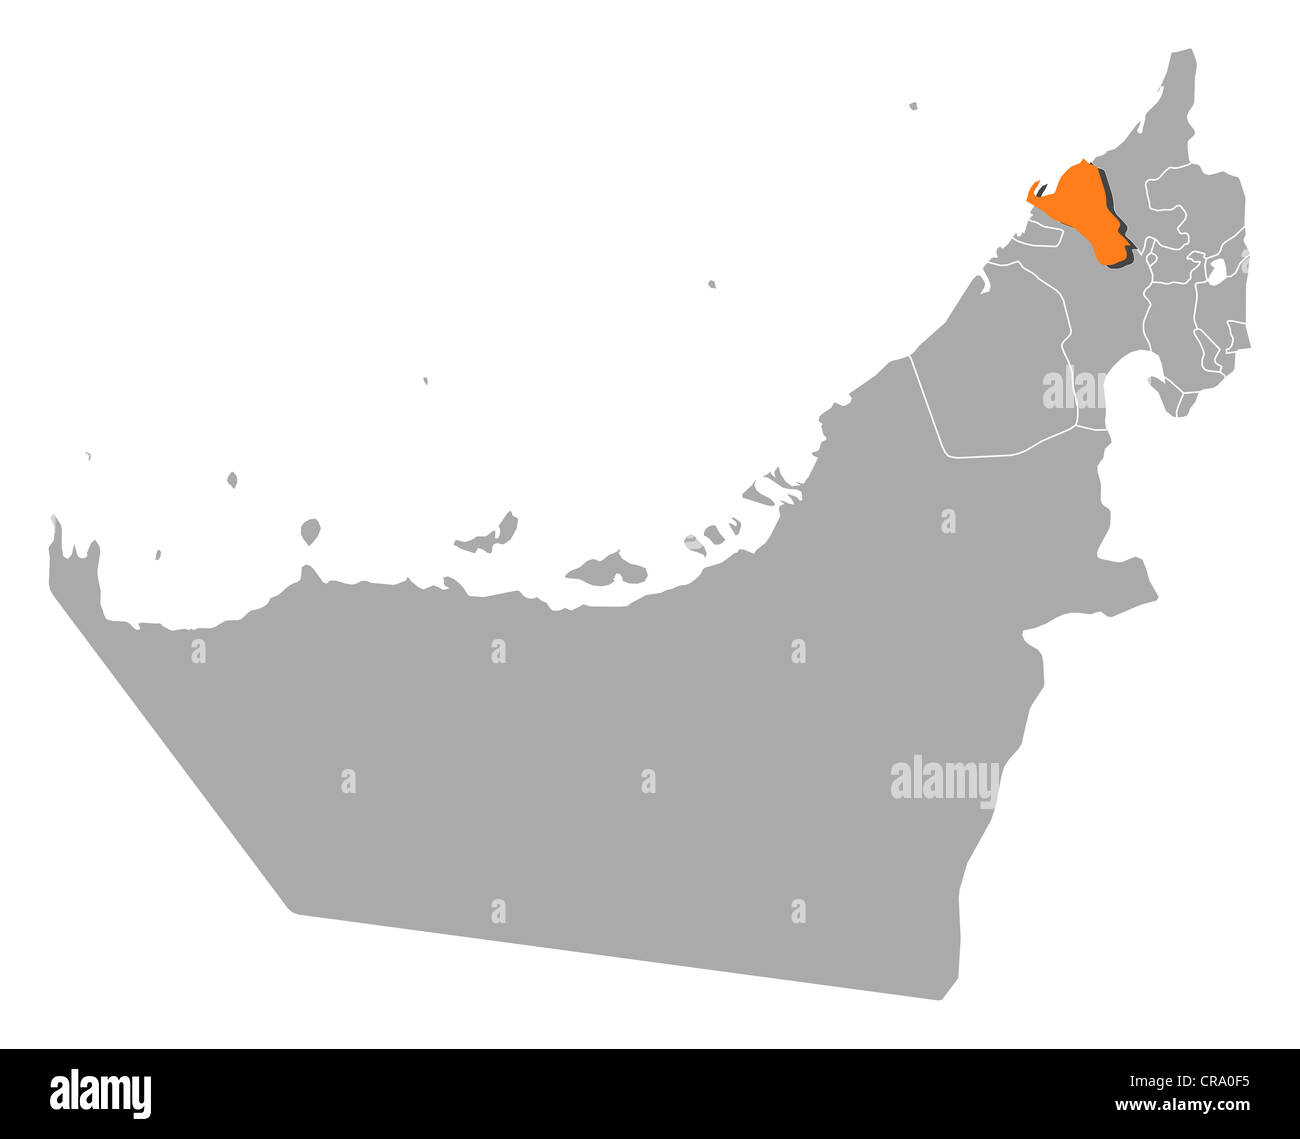 Political map of the United Arab Emirates with the several emirates where Umm al-Quwain is highlighted. - Stock Image